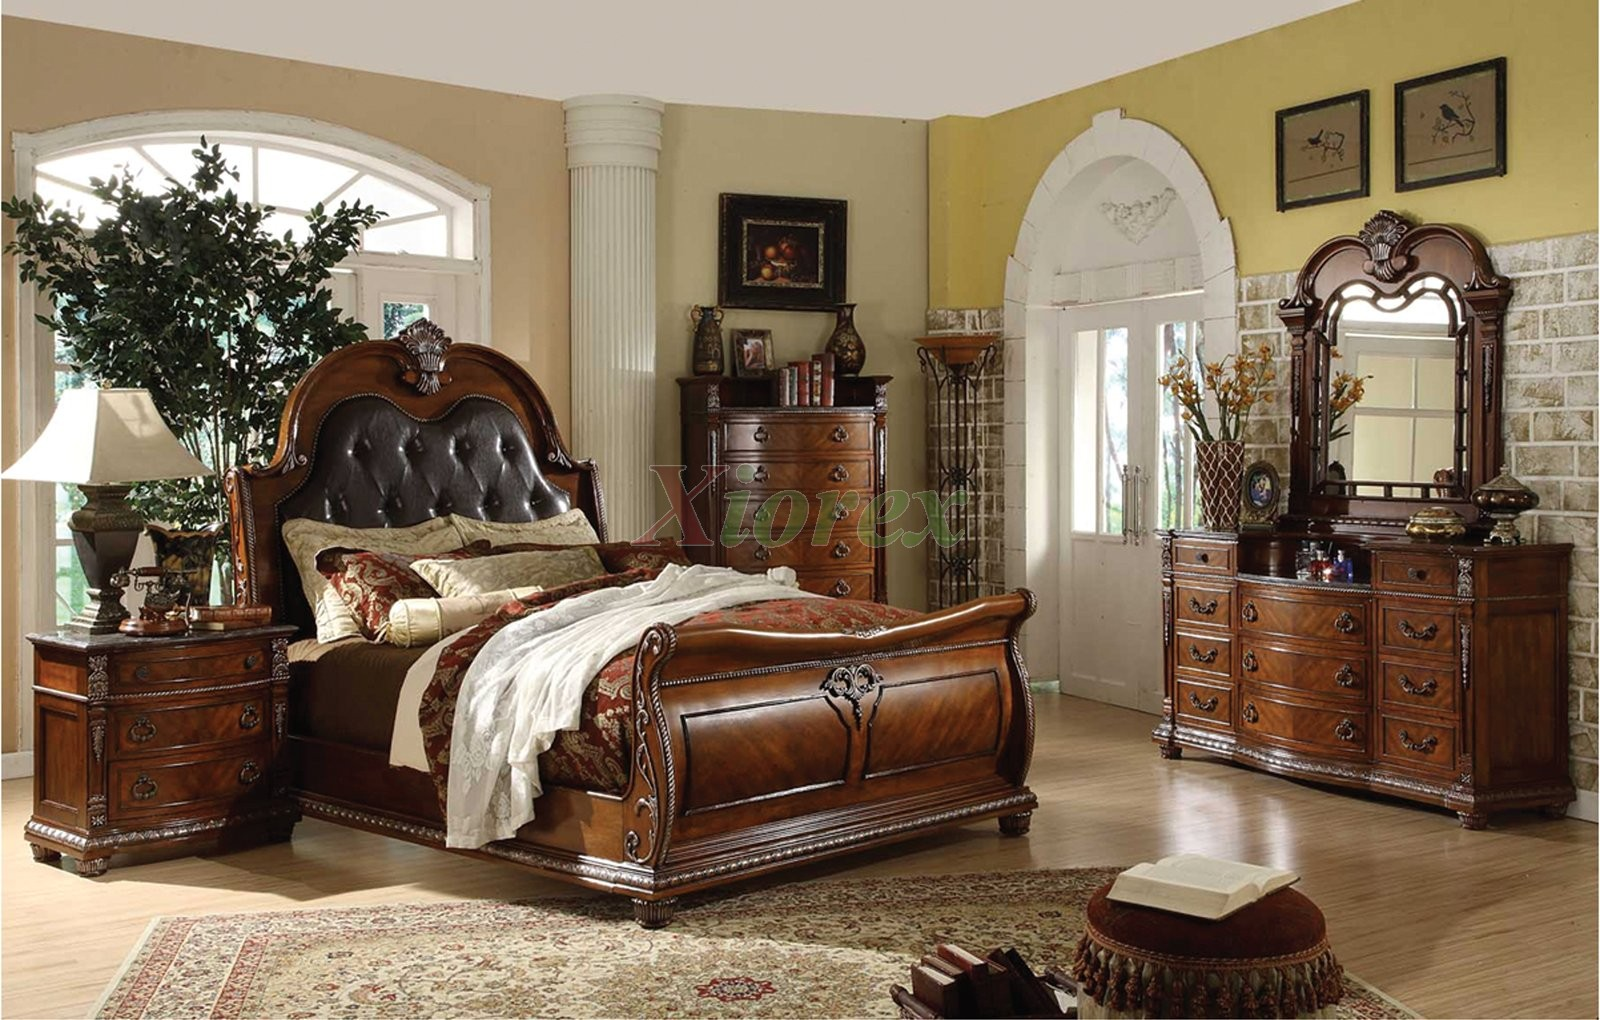 Bedroom Furniture Traditional traditional sleigh bedroom furniture set with leather headboard 106